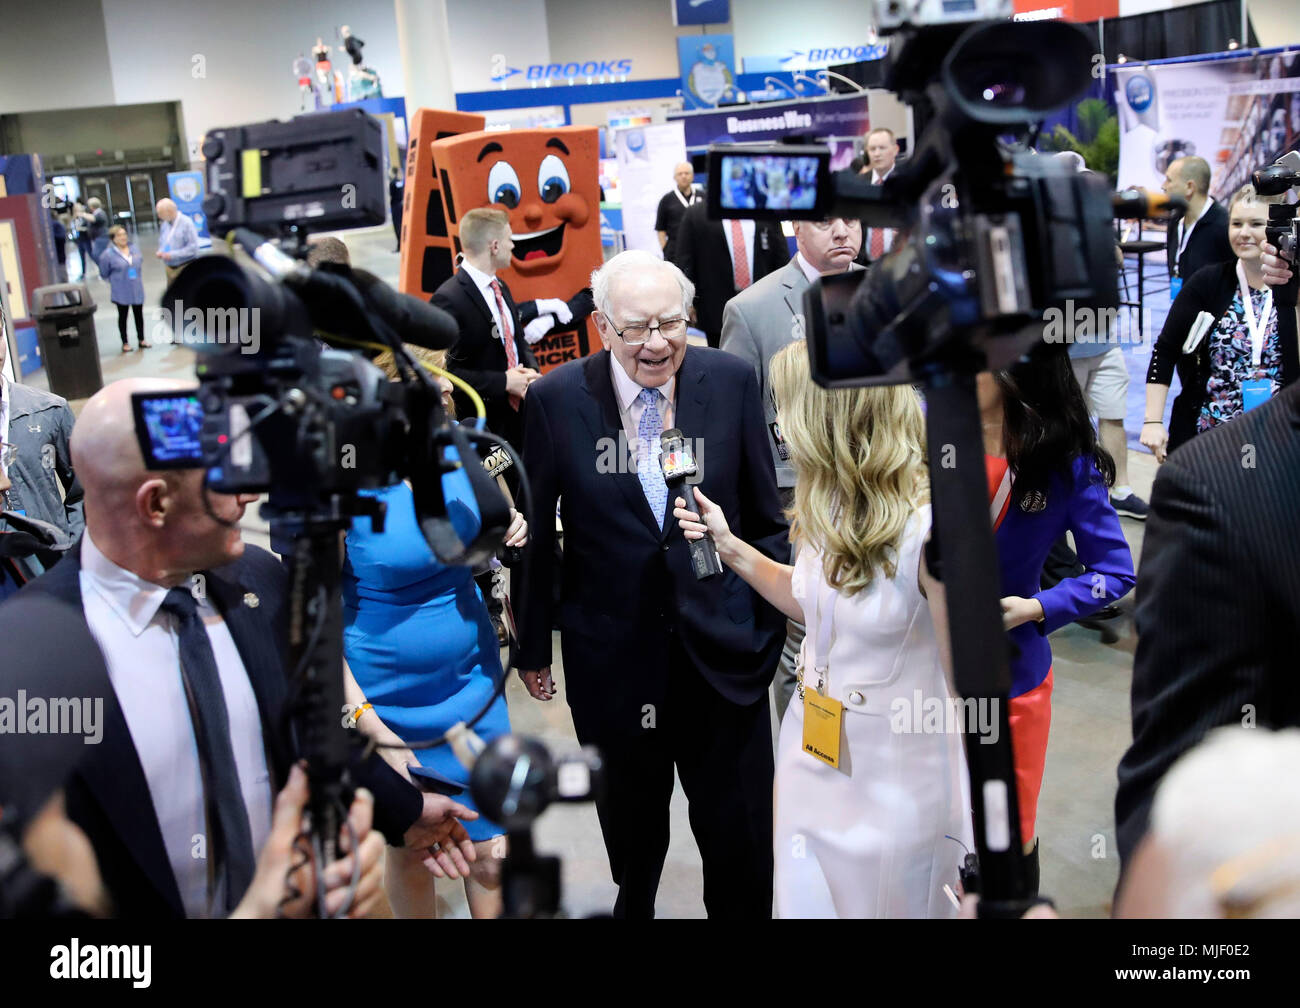 Omaha, USA. 5th May, 2018. U.S. billionaire investor Warren Buffett (C), chairman and CEO of Berkshire Hathaway, is interviewed before the Berkshire Hathaway's annual shareholders meeting in Omaha, Nebraska, the United States, on May 5, 2018. Berkshire Hathaway held its 2018 shareholders meeting on Saturday, attended by tens of thousands of people from all over the world. Credit: Wang Ying/Xinhua/Alamy Live News Stock Photo